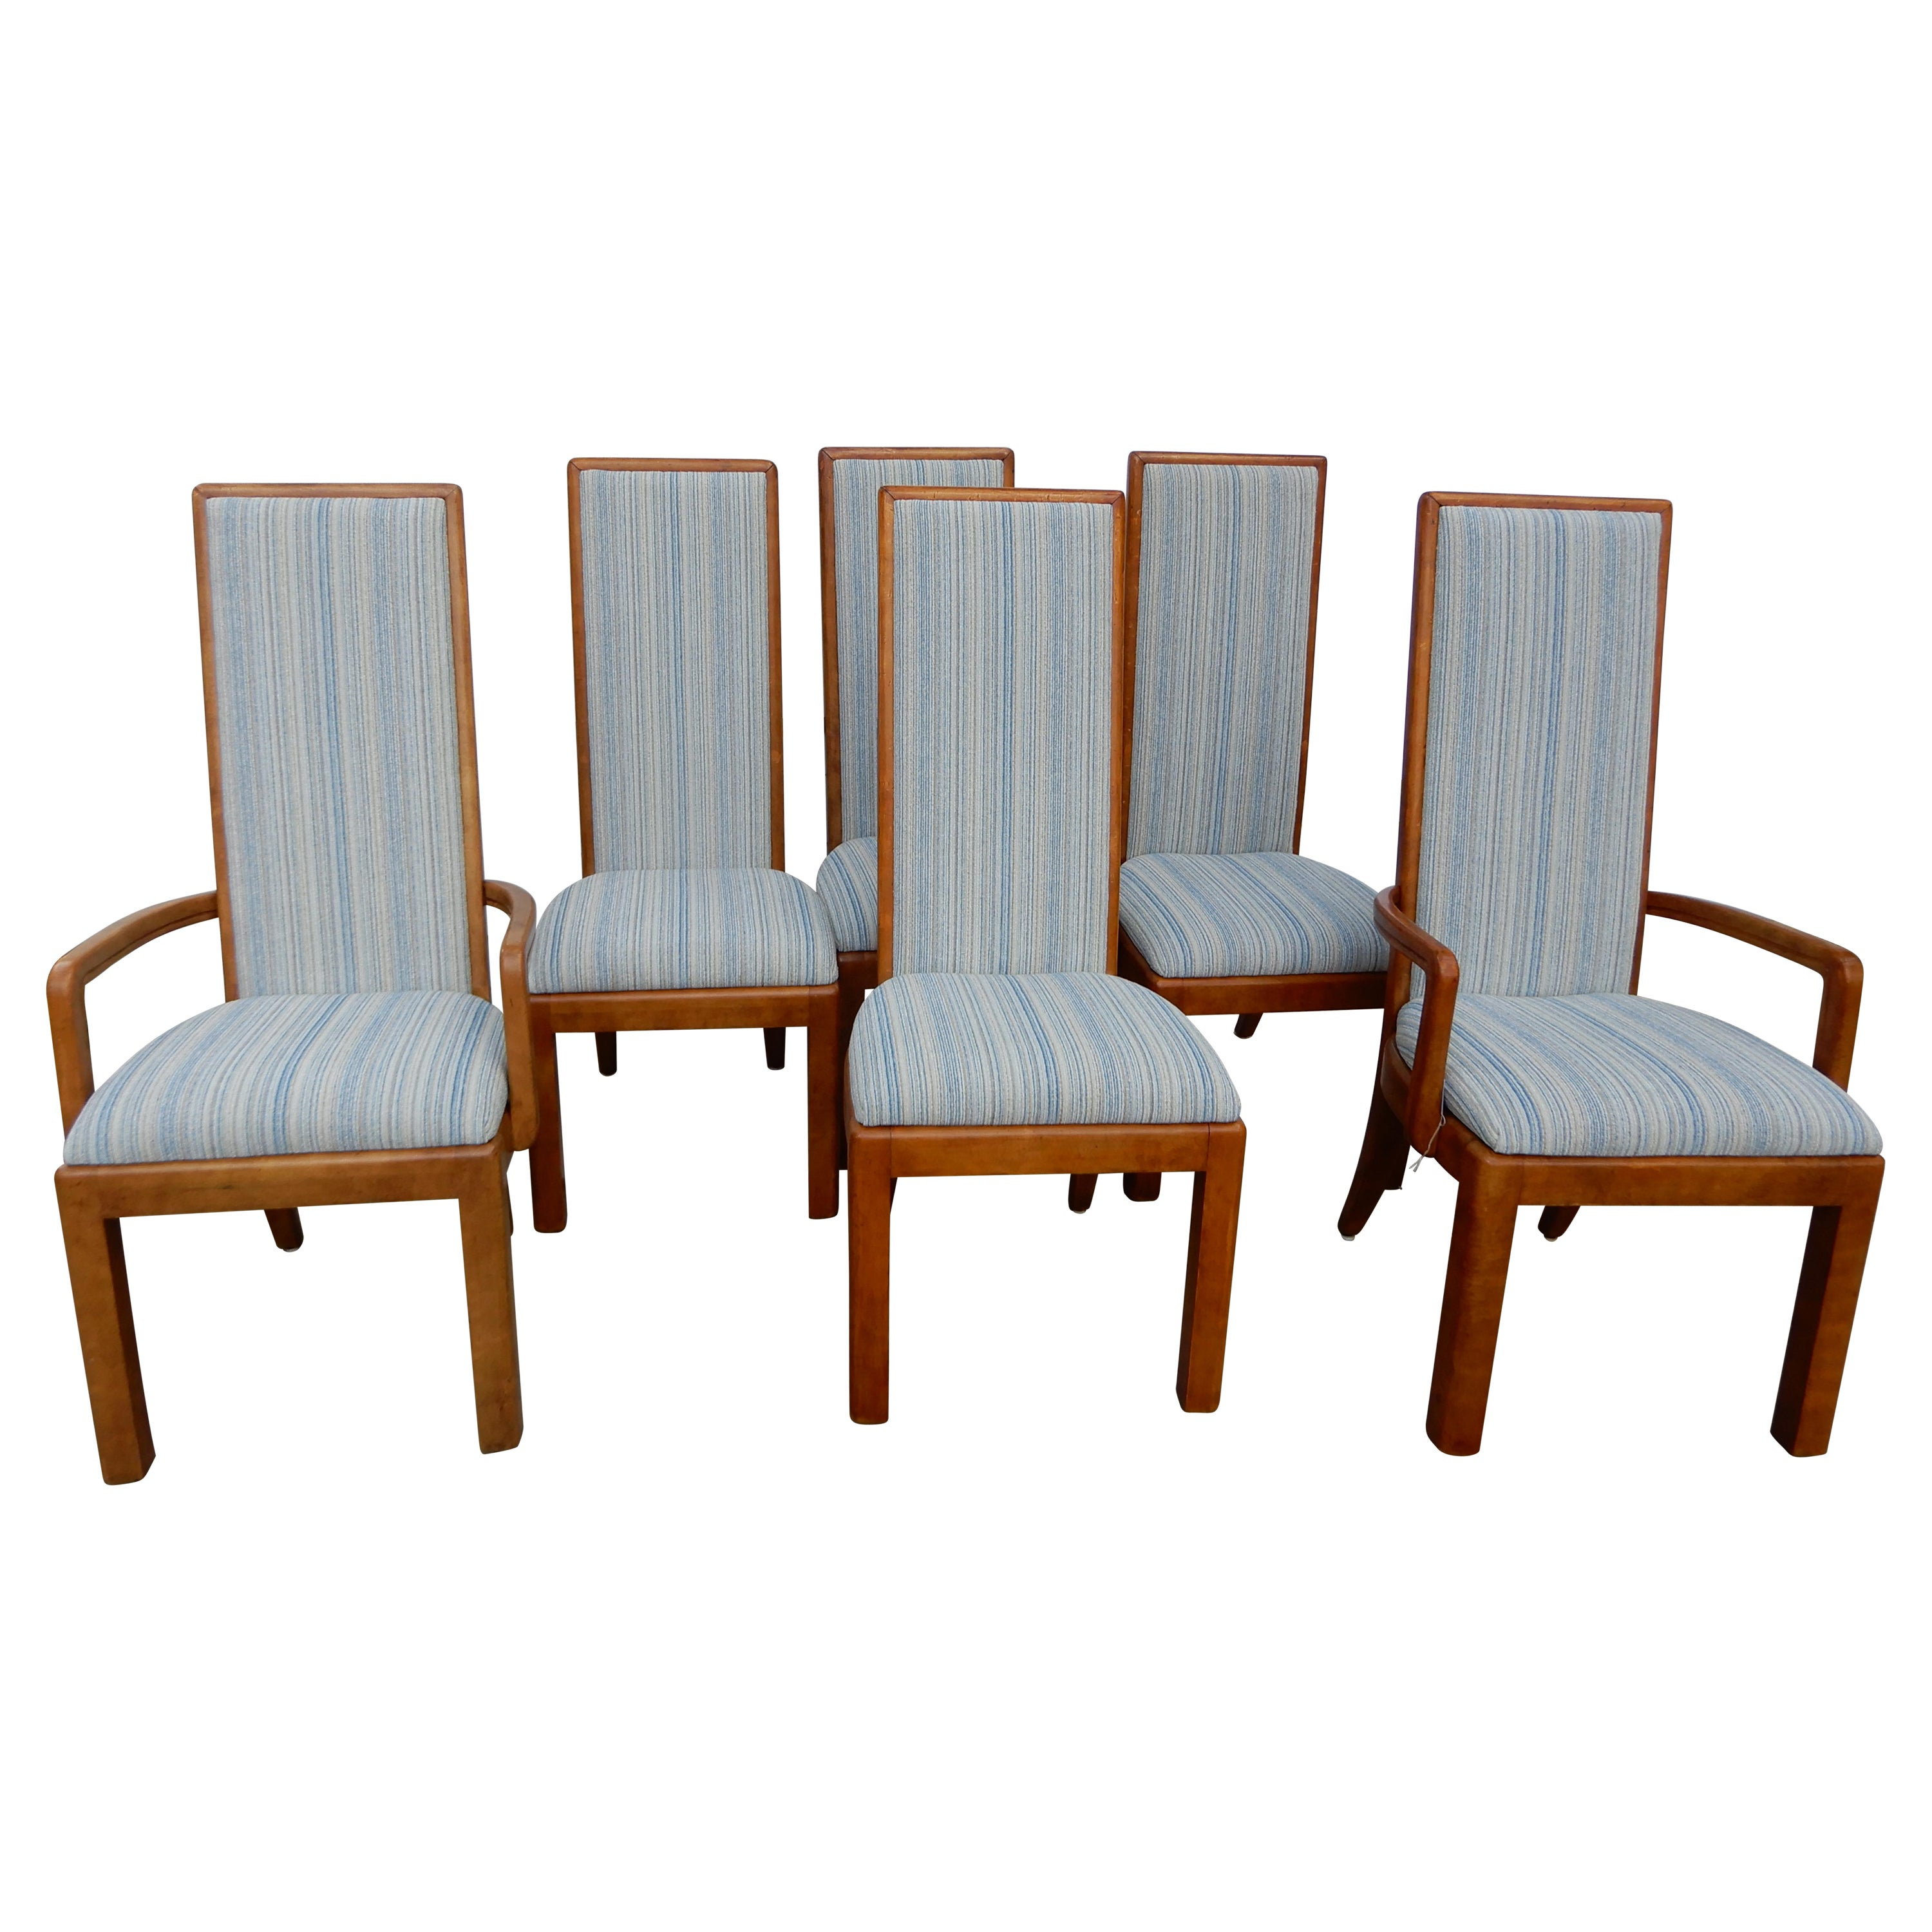 Six High Back Dining Room Chairs in the School of Frank Lloyd Wright